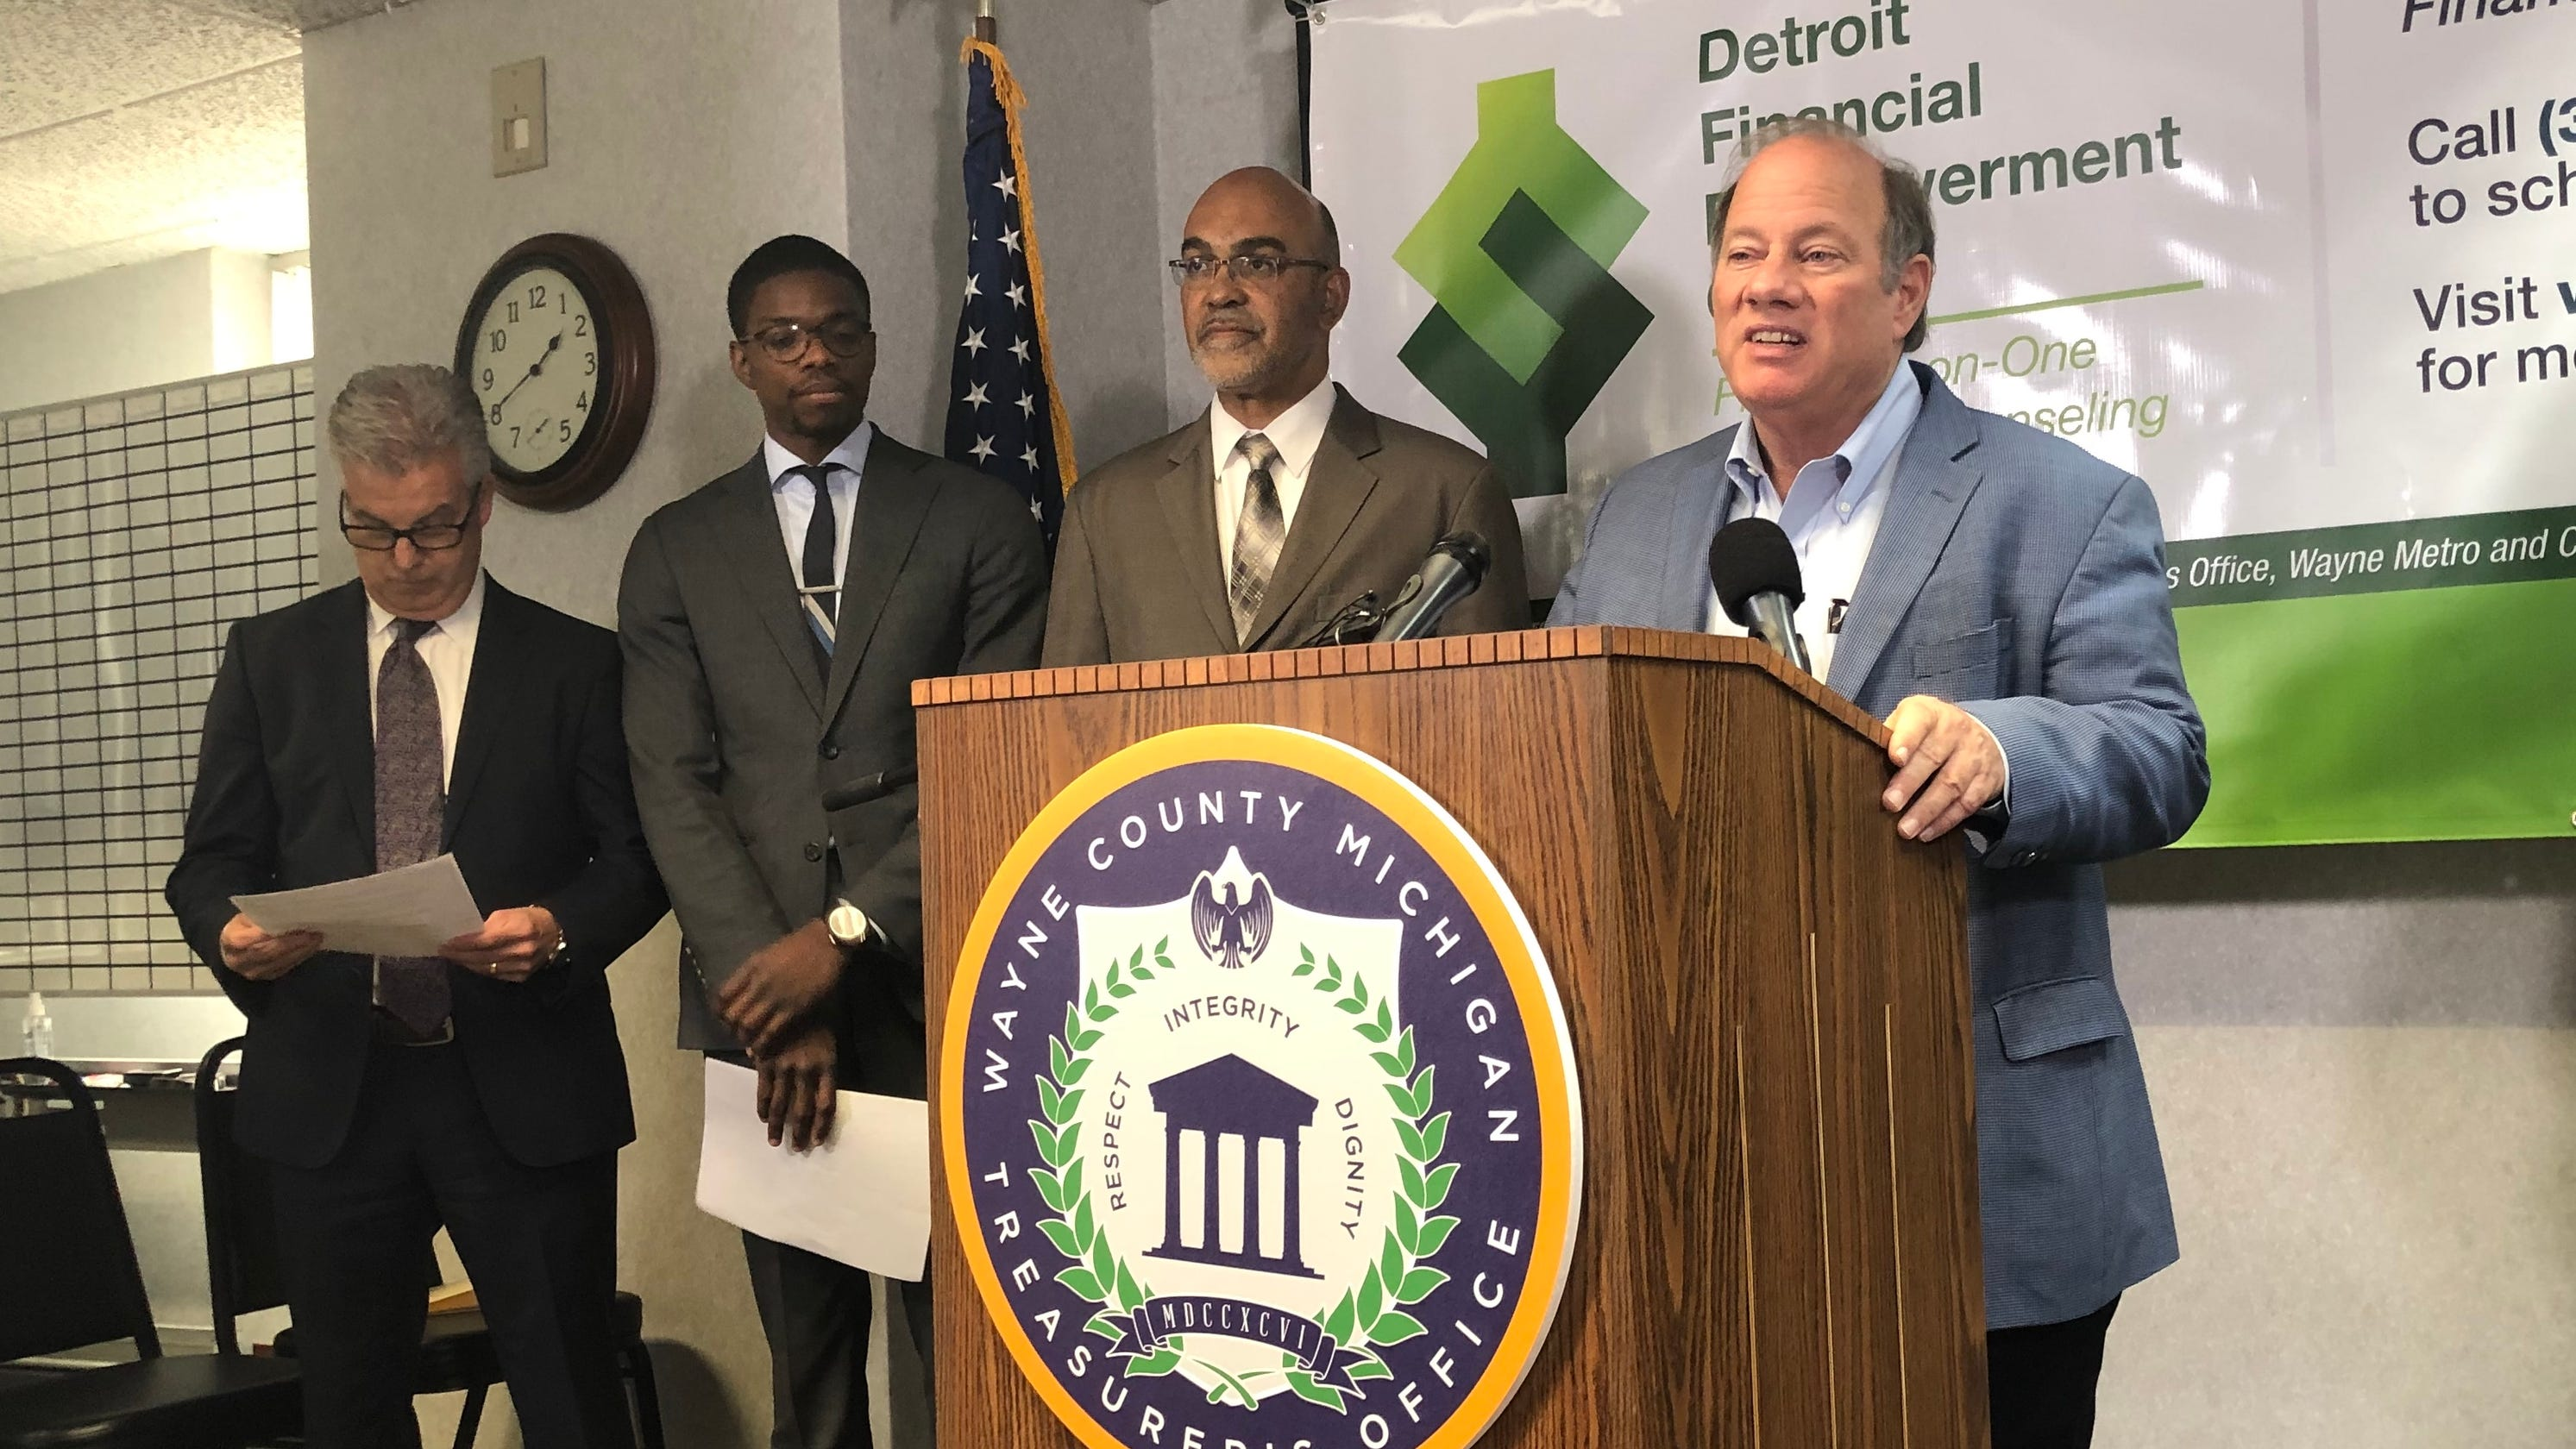 Low-income Detroiters offered free financial counseling